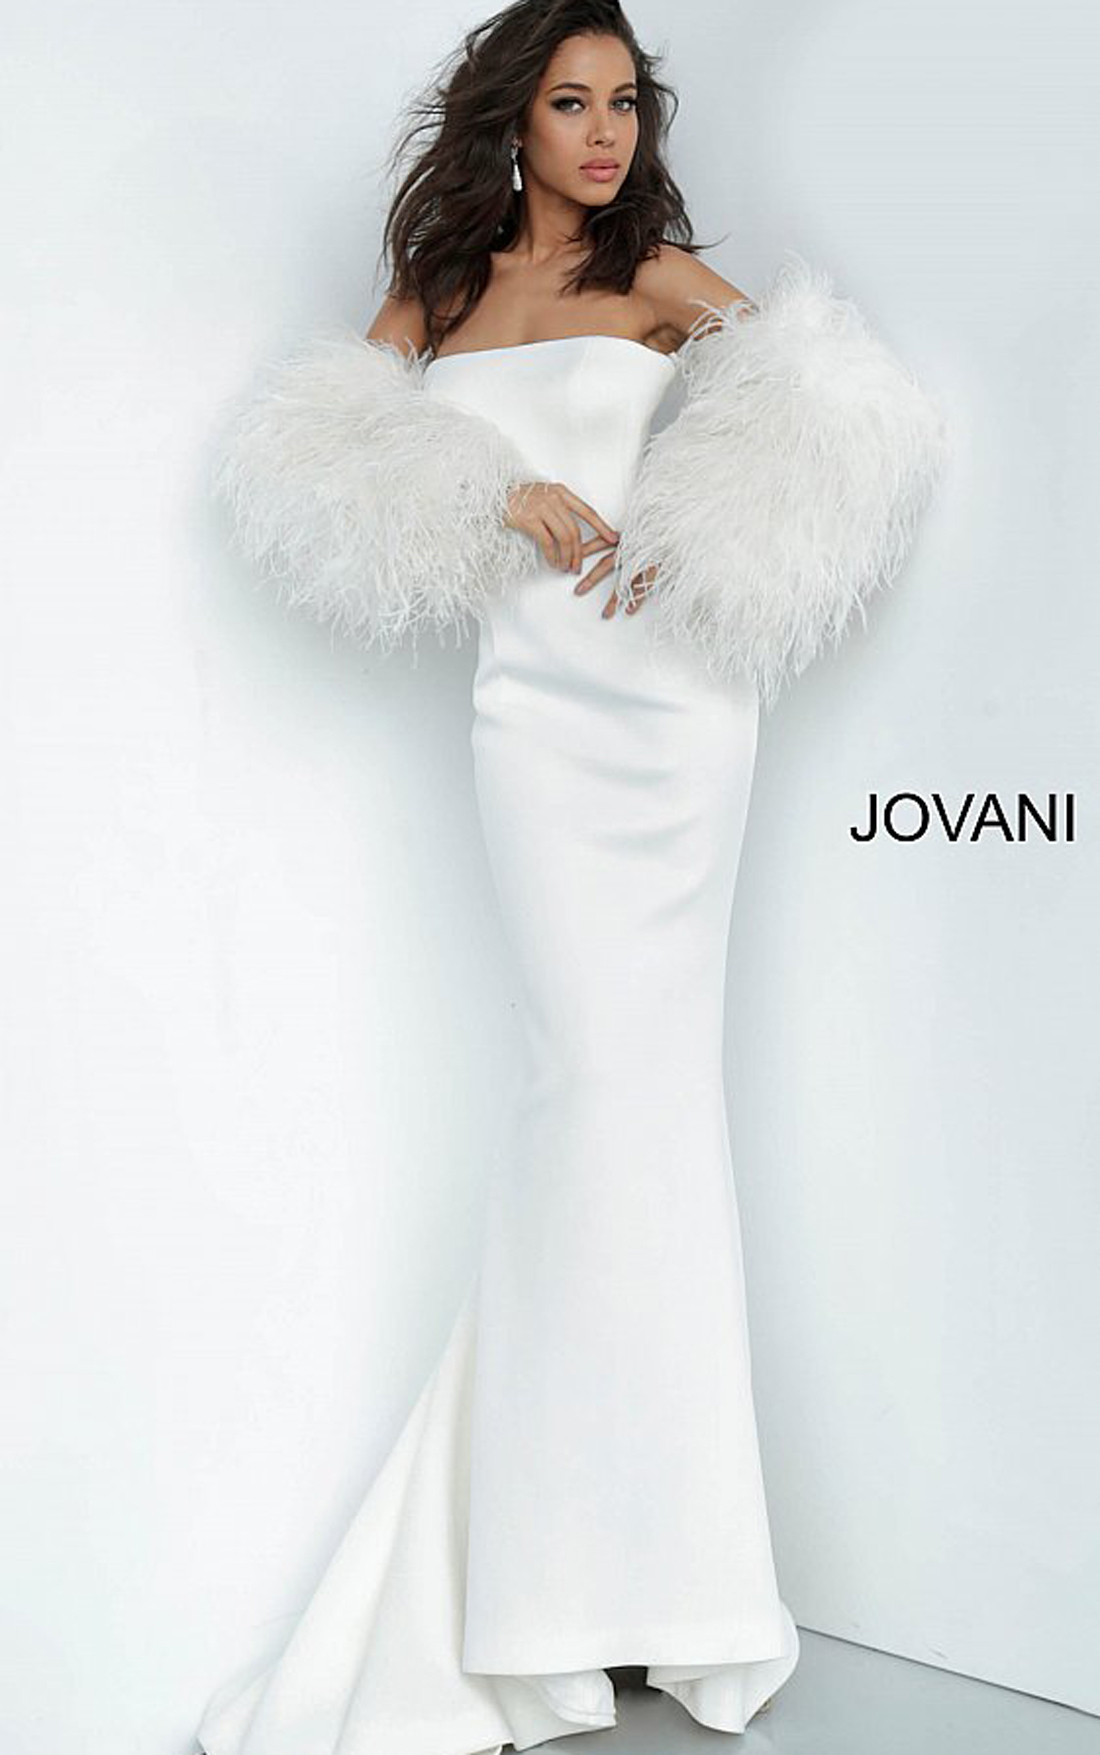 Jovani - White Strapless Scuba Gown with Ostrich Feather Sleeves (1226)